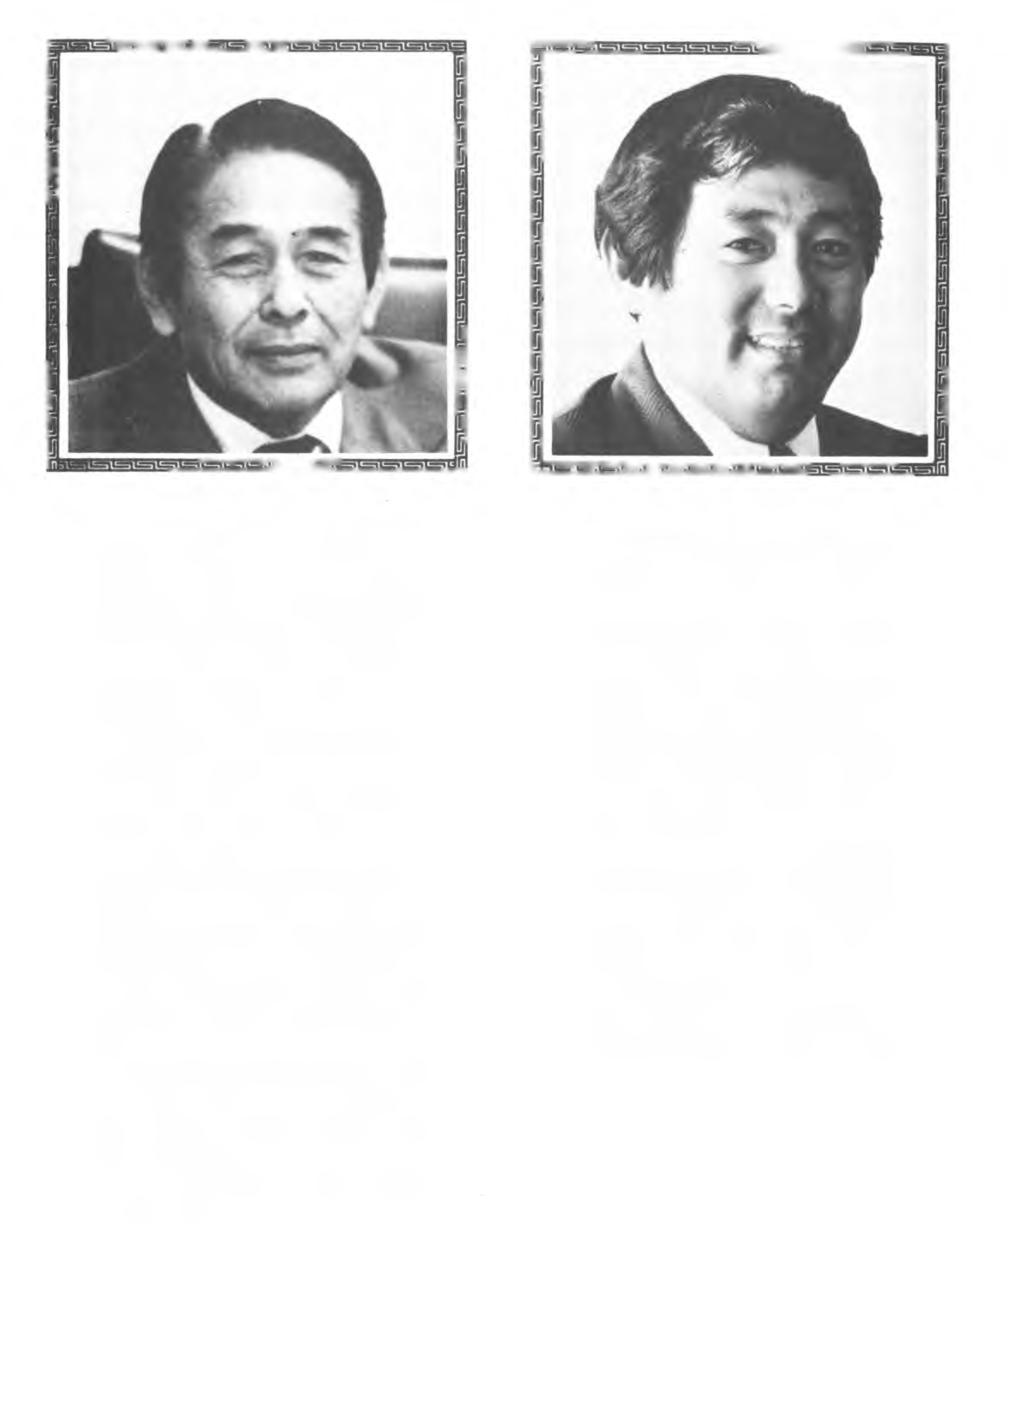 JACK H. UJIMORI Jack H. Ujimori is the owner of Ujimori Realty Inc., UF Builders Inc., Islander Investment, Inc., Ujimori Development, Ltd., U & S Real Estate, Inc.